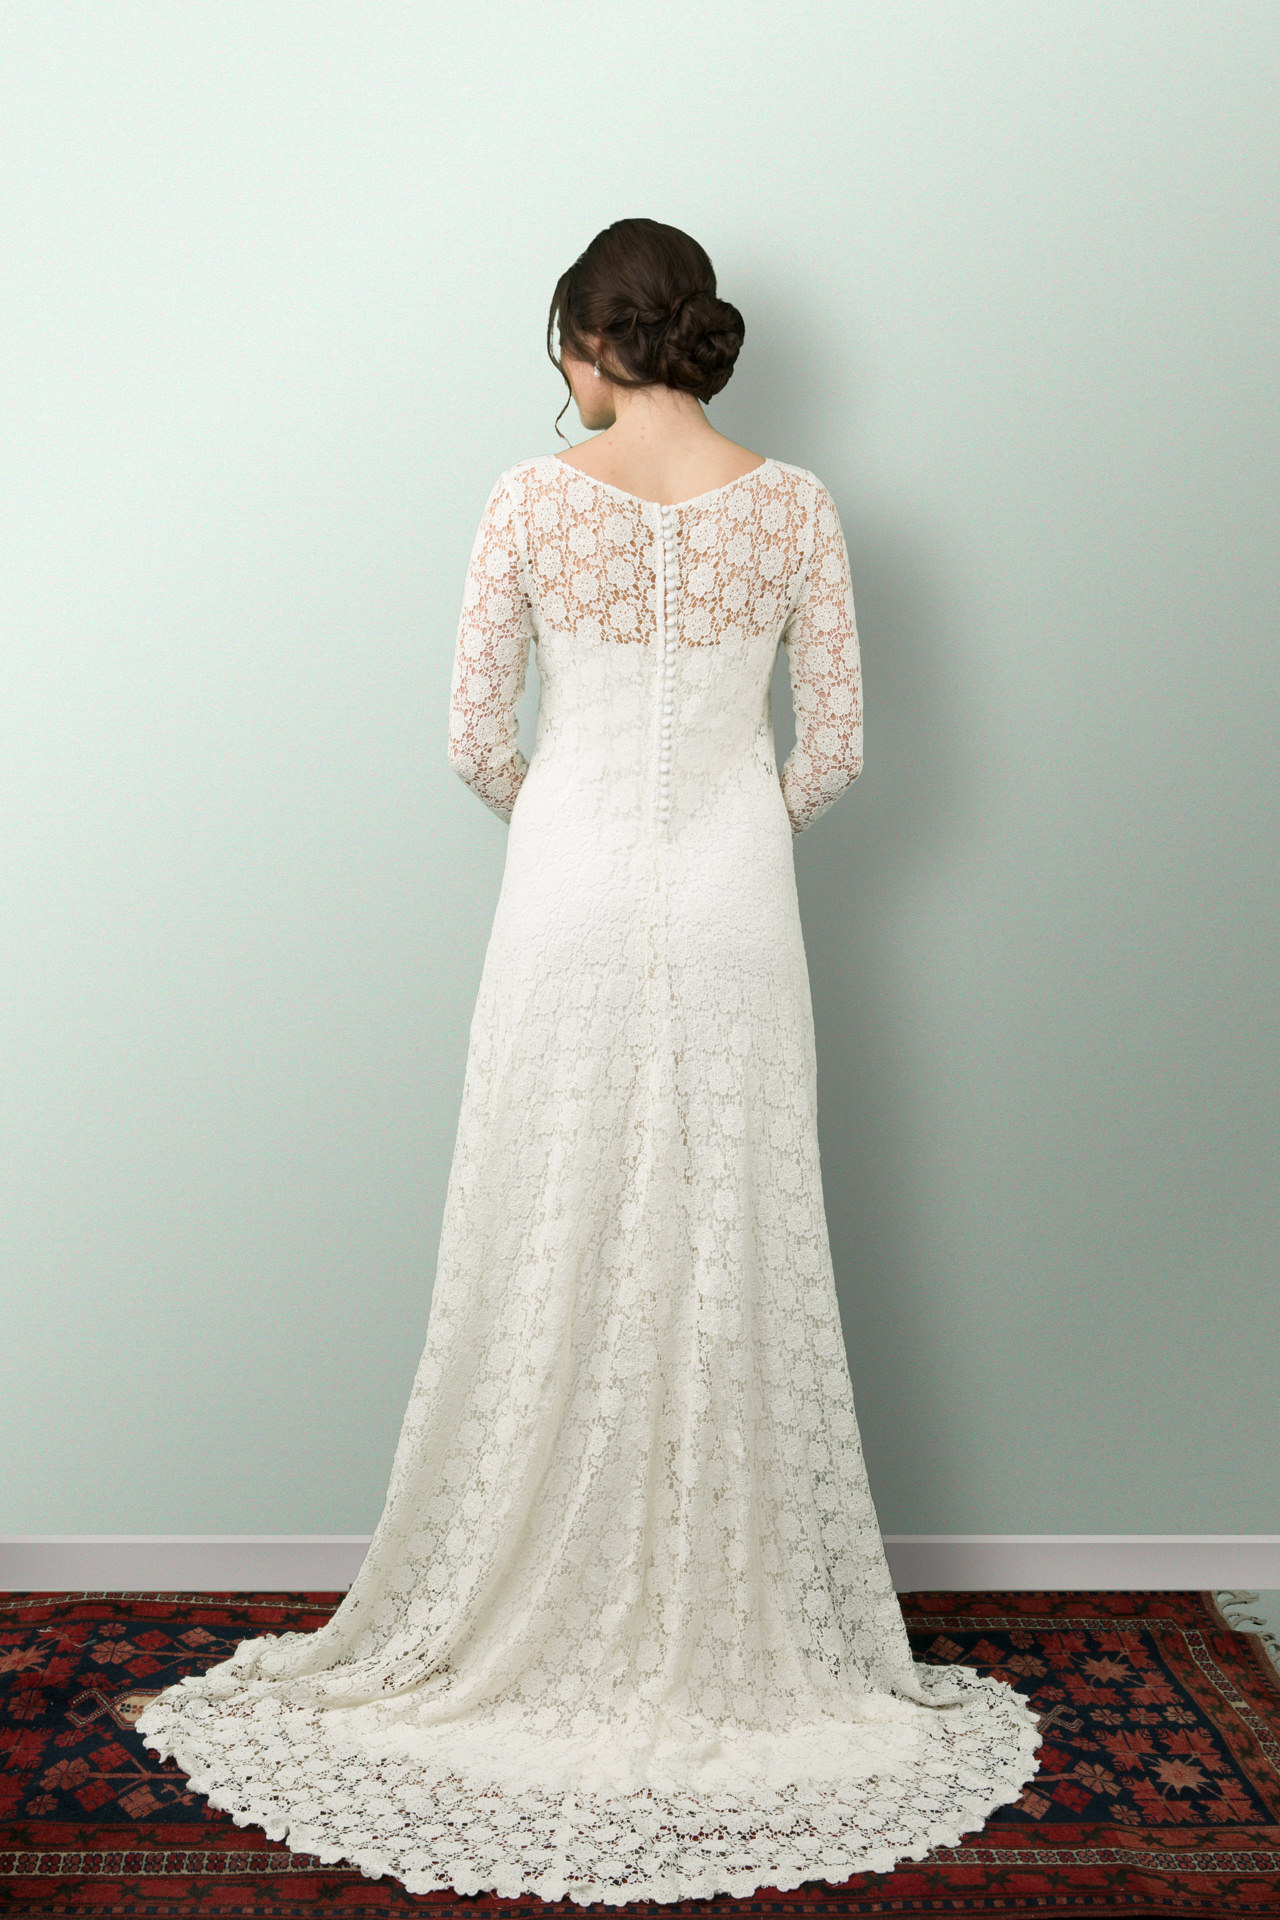 Jessica Lace Wedding Dress - PaperswanBride